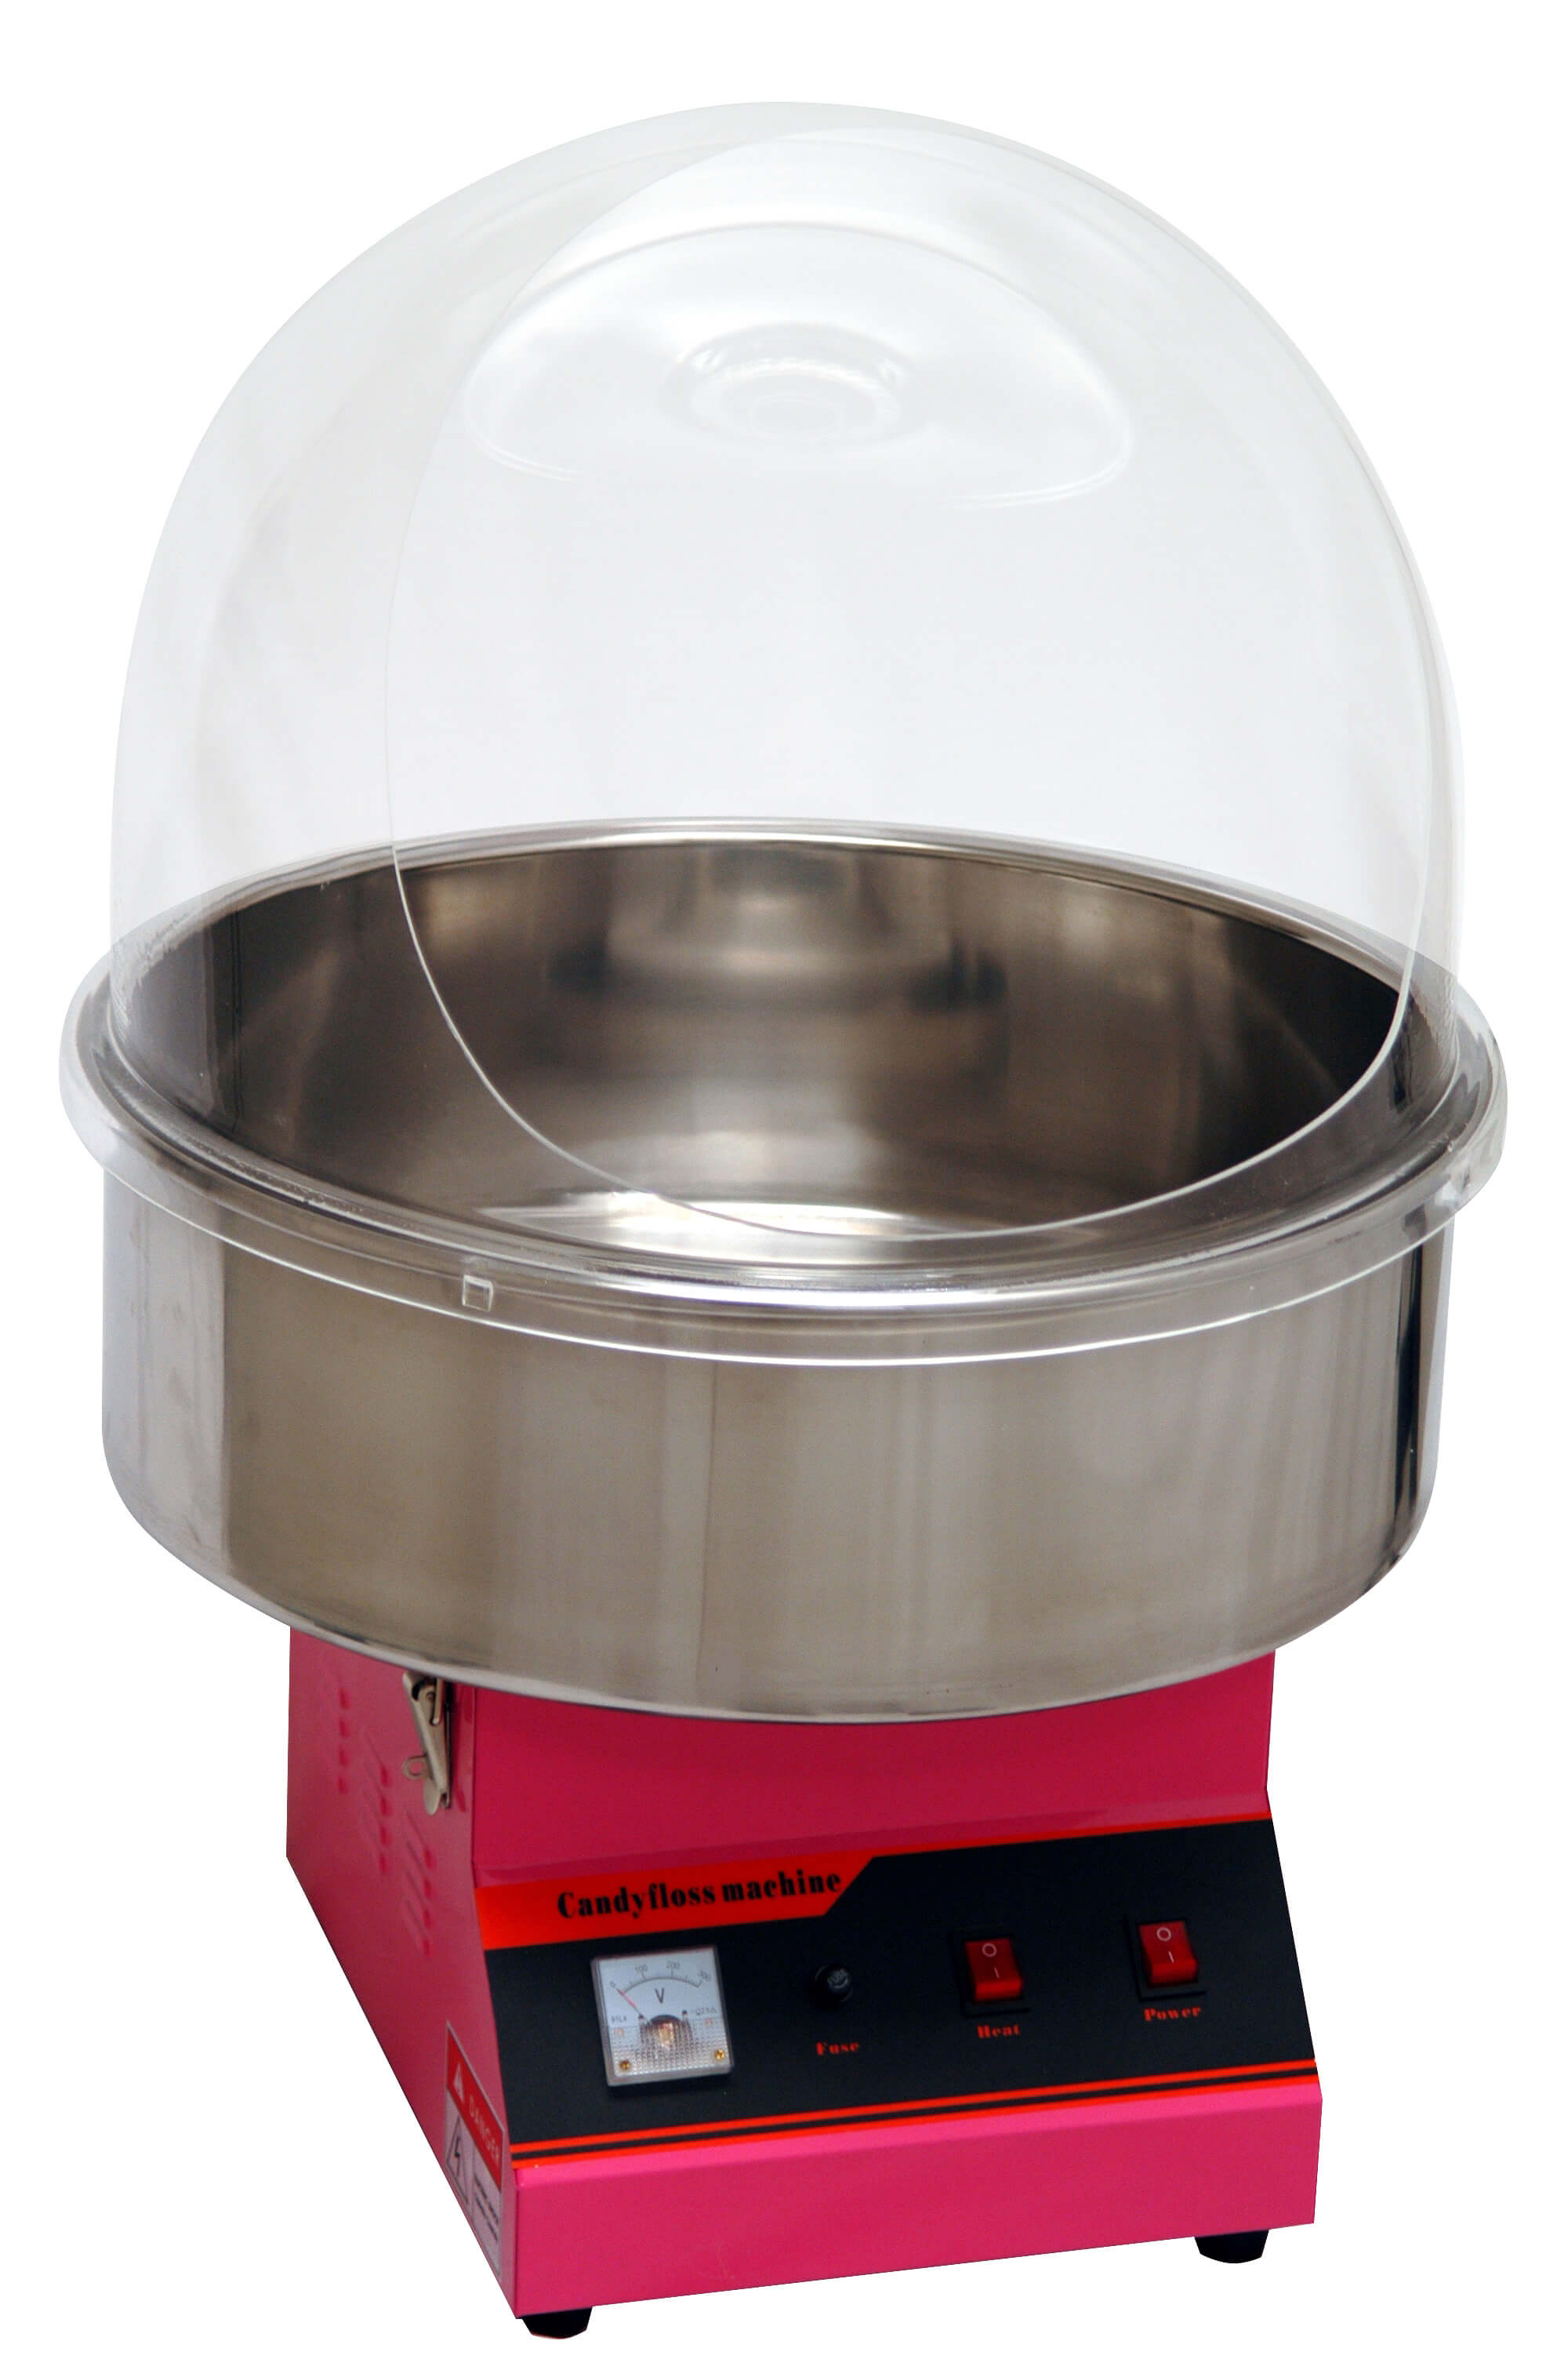 cotton-candy-machine-dome-prominent-1-.jpg